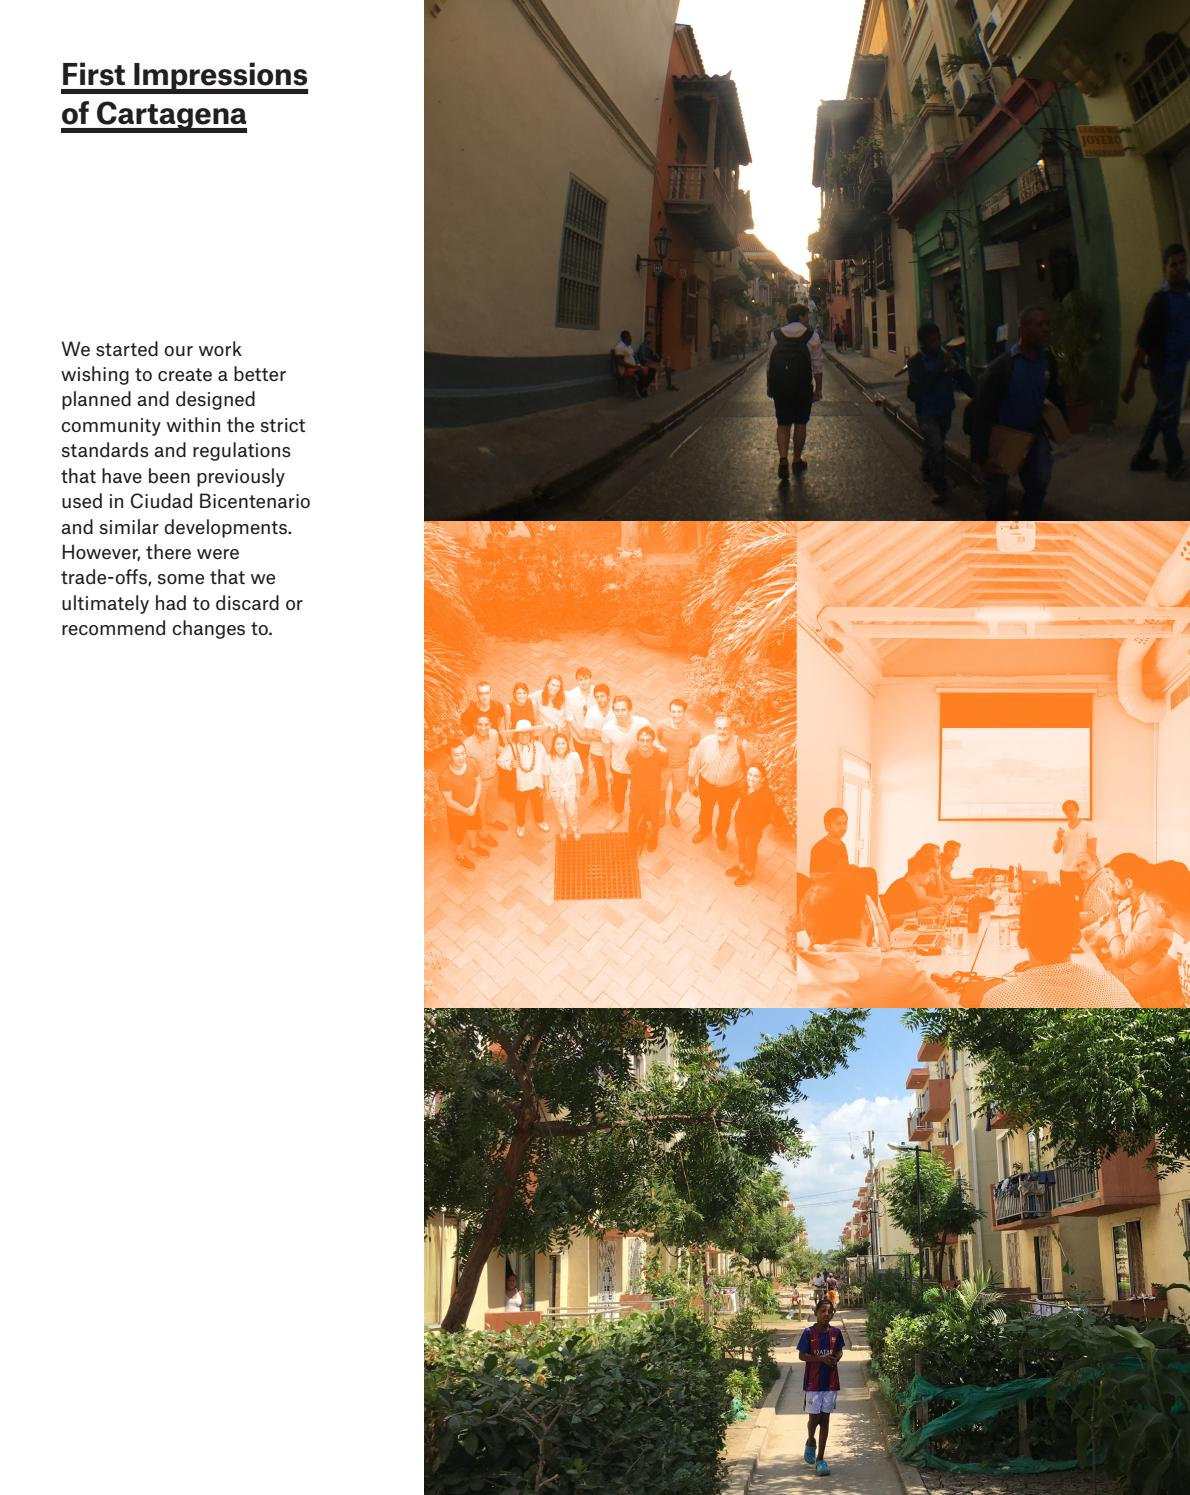 HOUSING + A Live-Work Neighborhood for Low-Income Households in Cartagena, Colombia